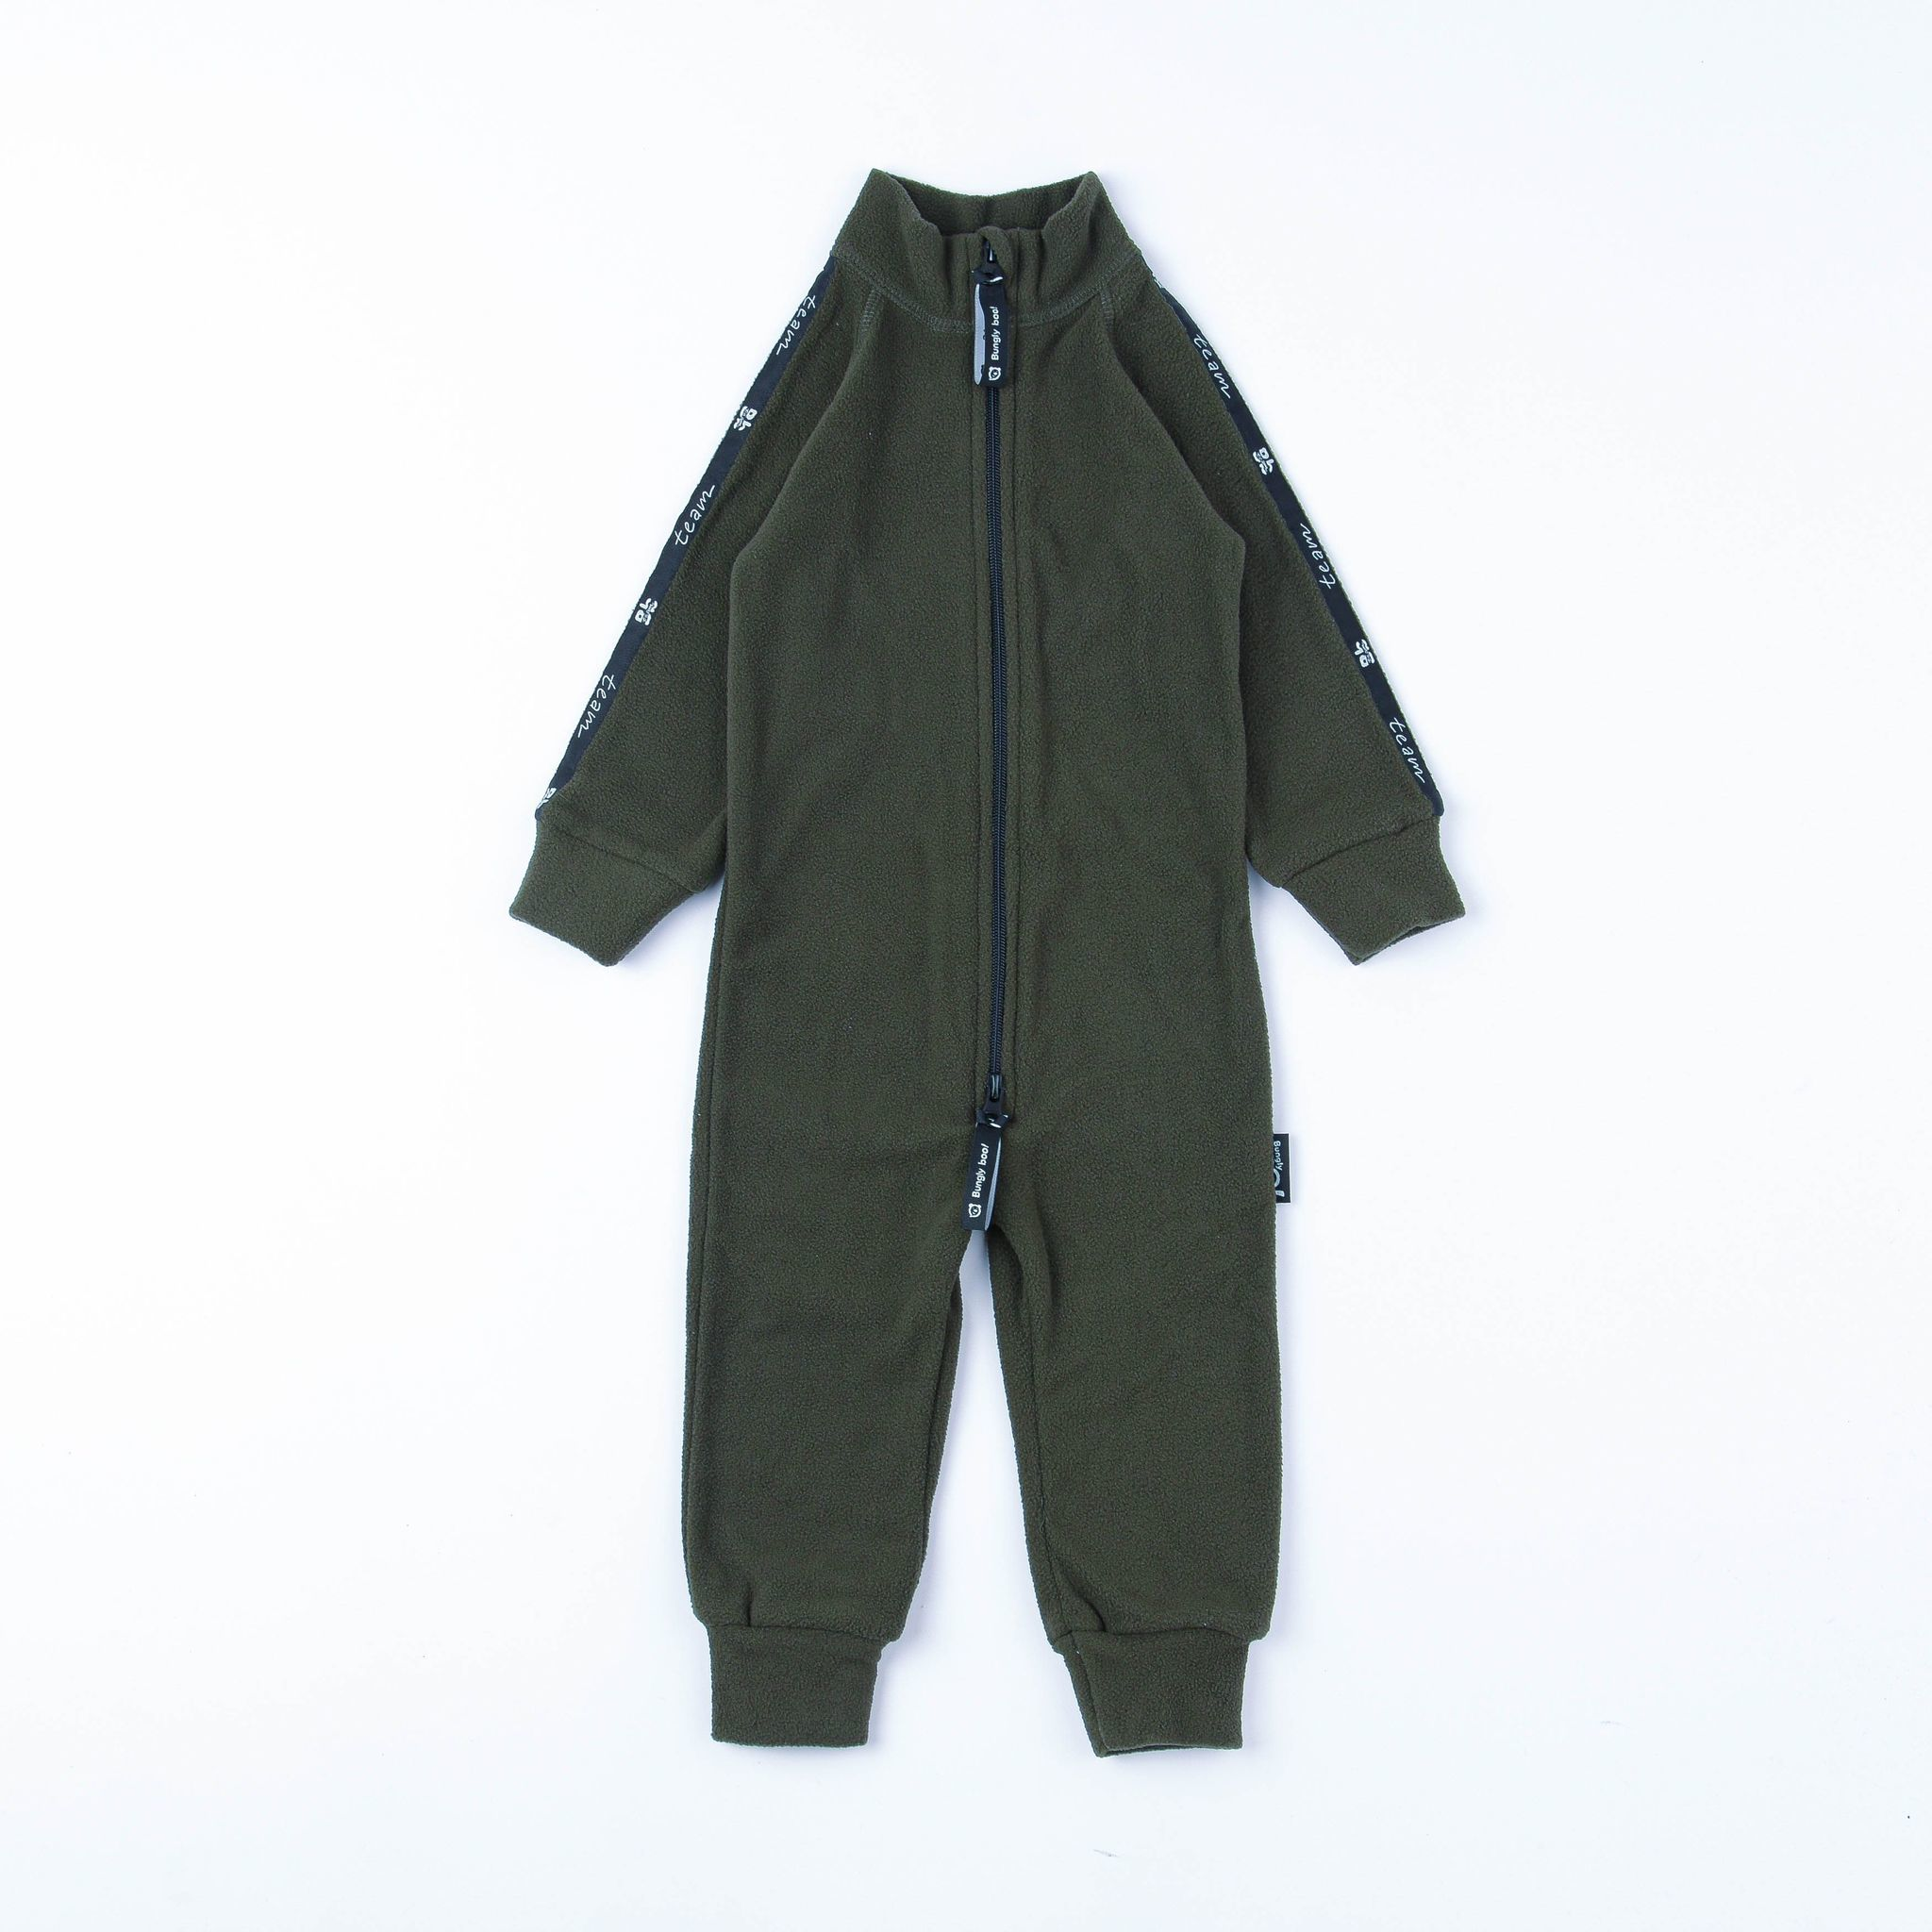 Thermal fleece jumpsuit with stripes - Khaki